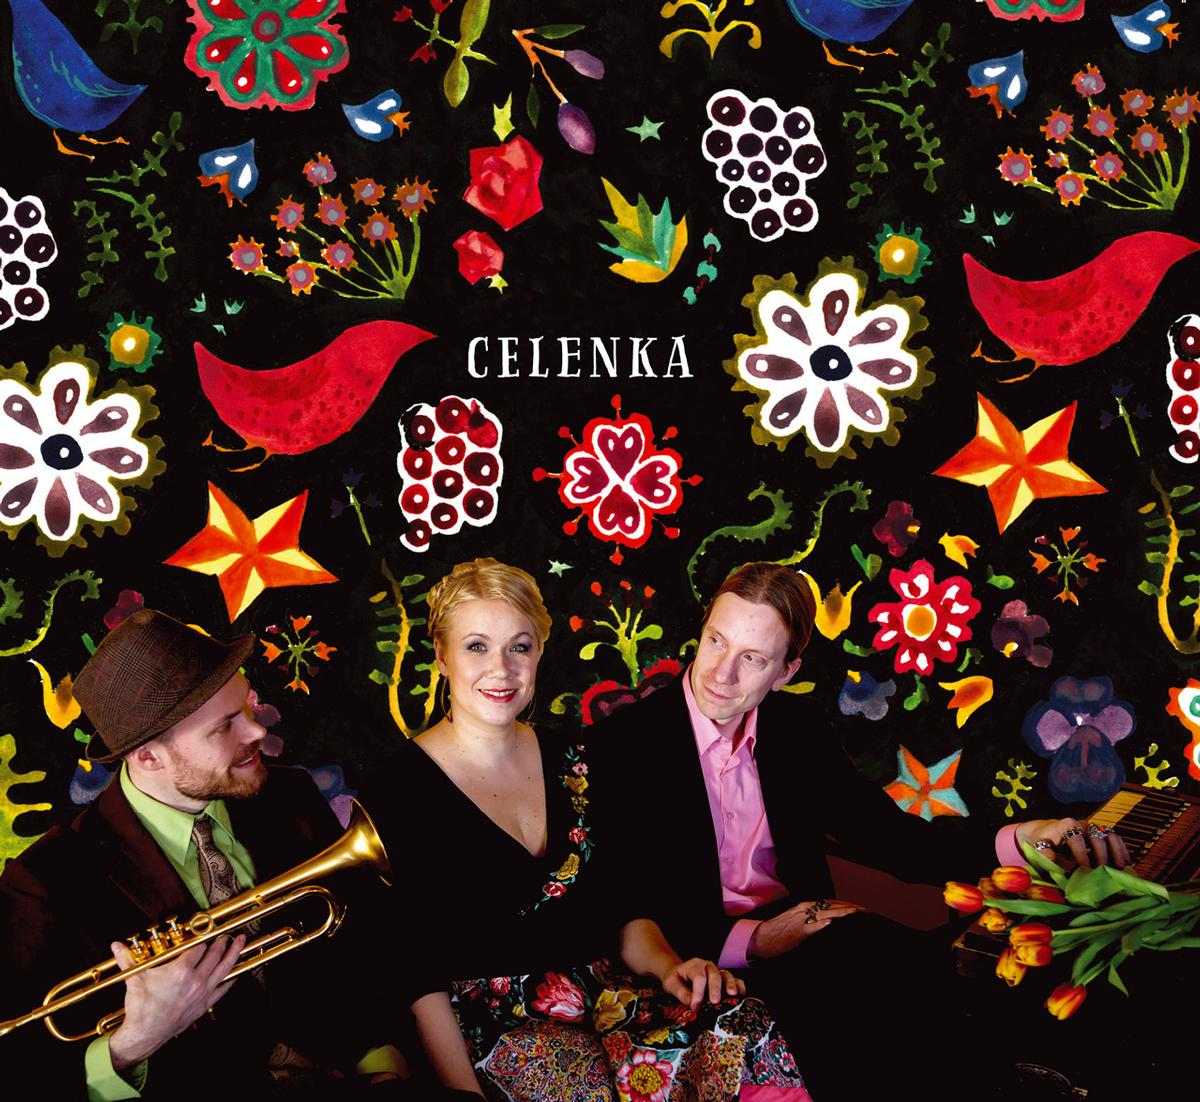 Celenka (self titled)